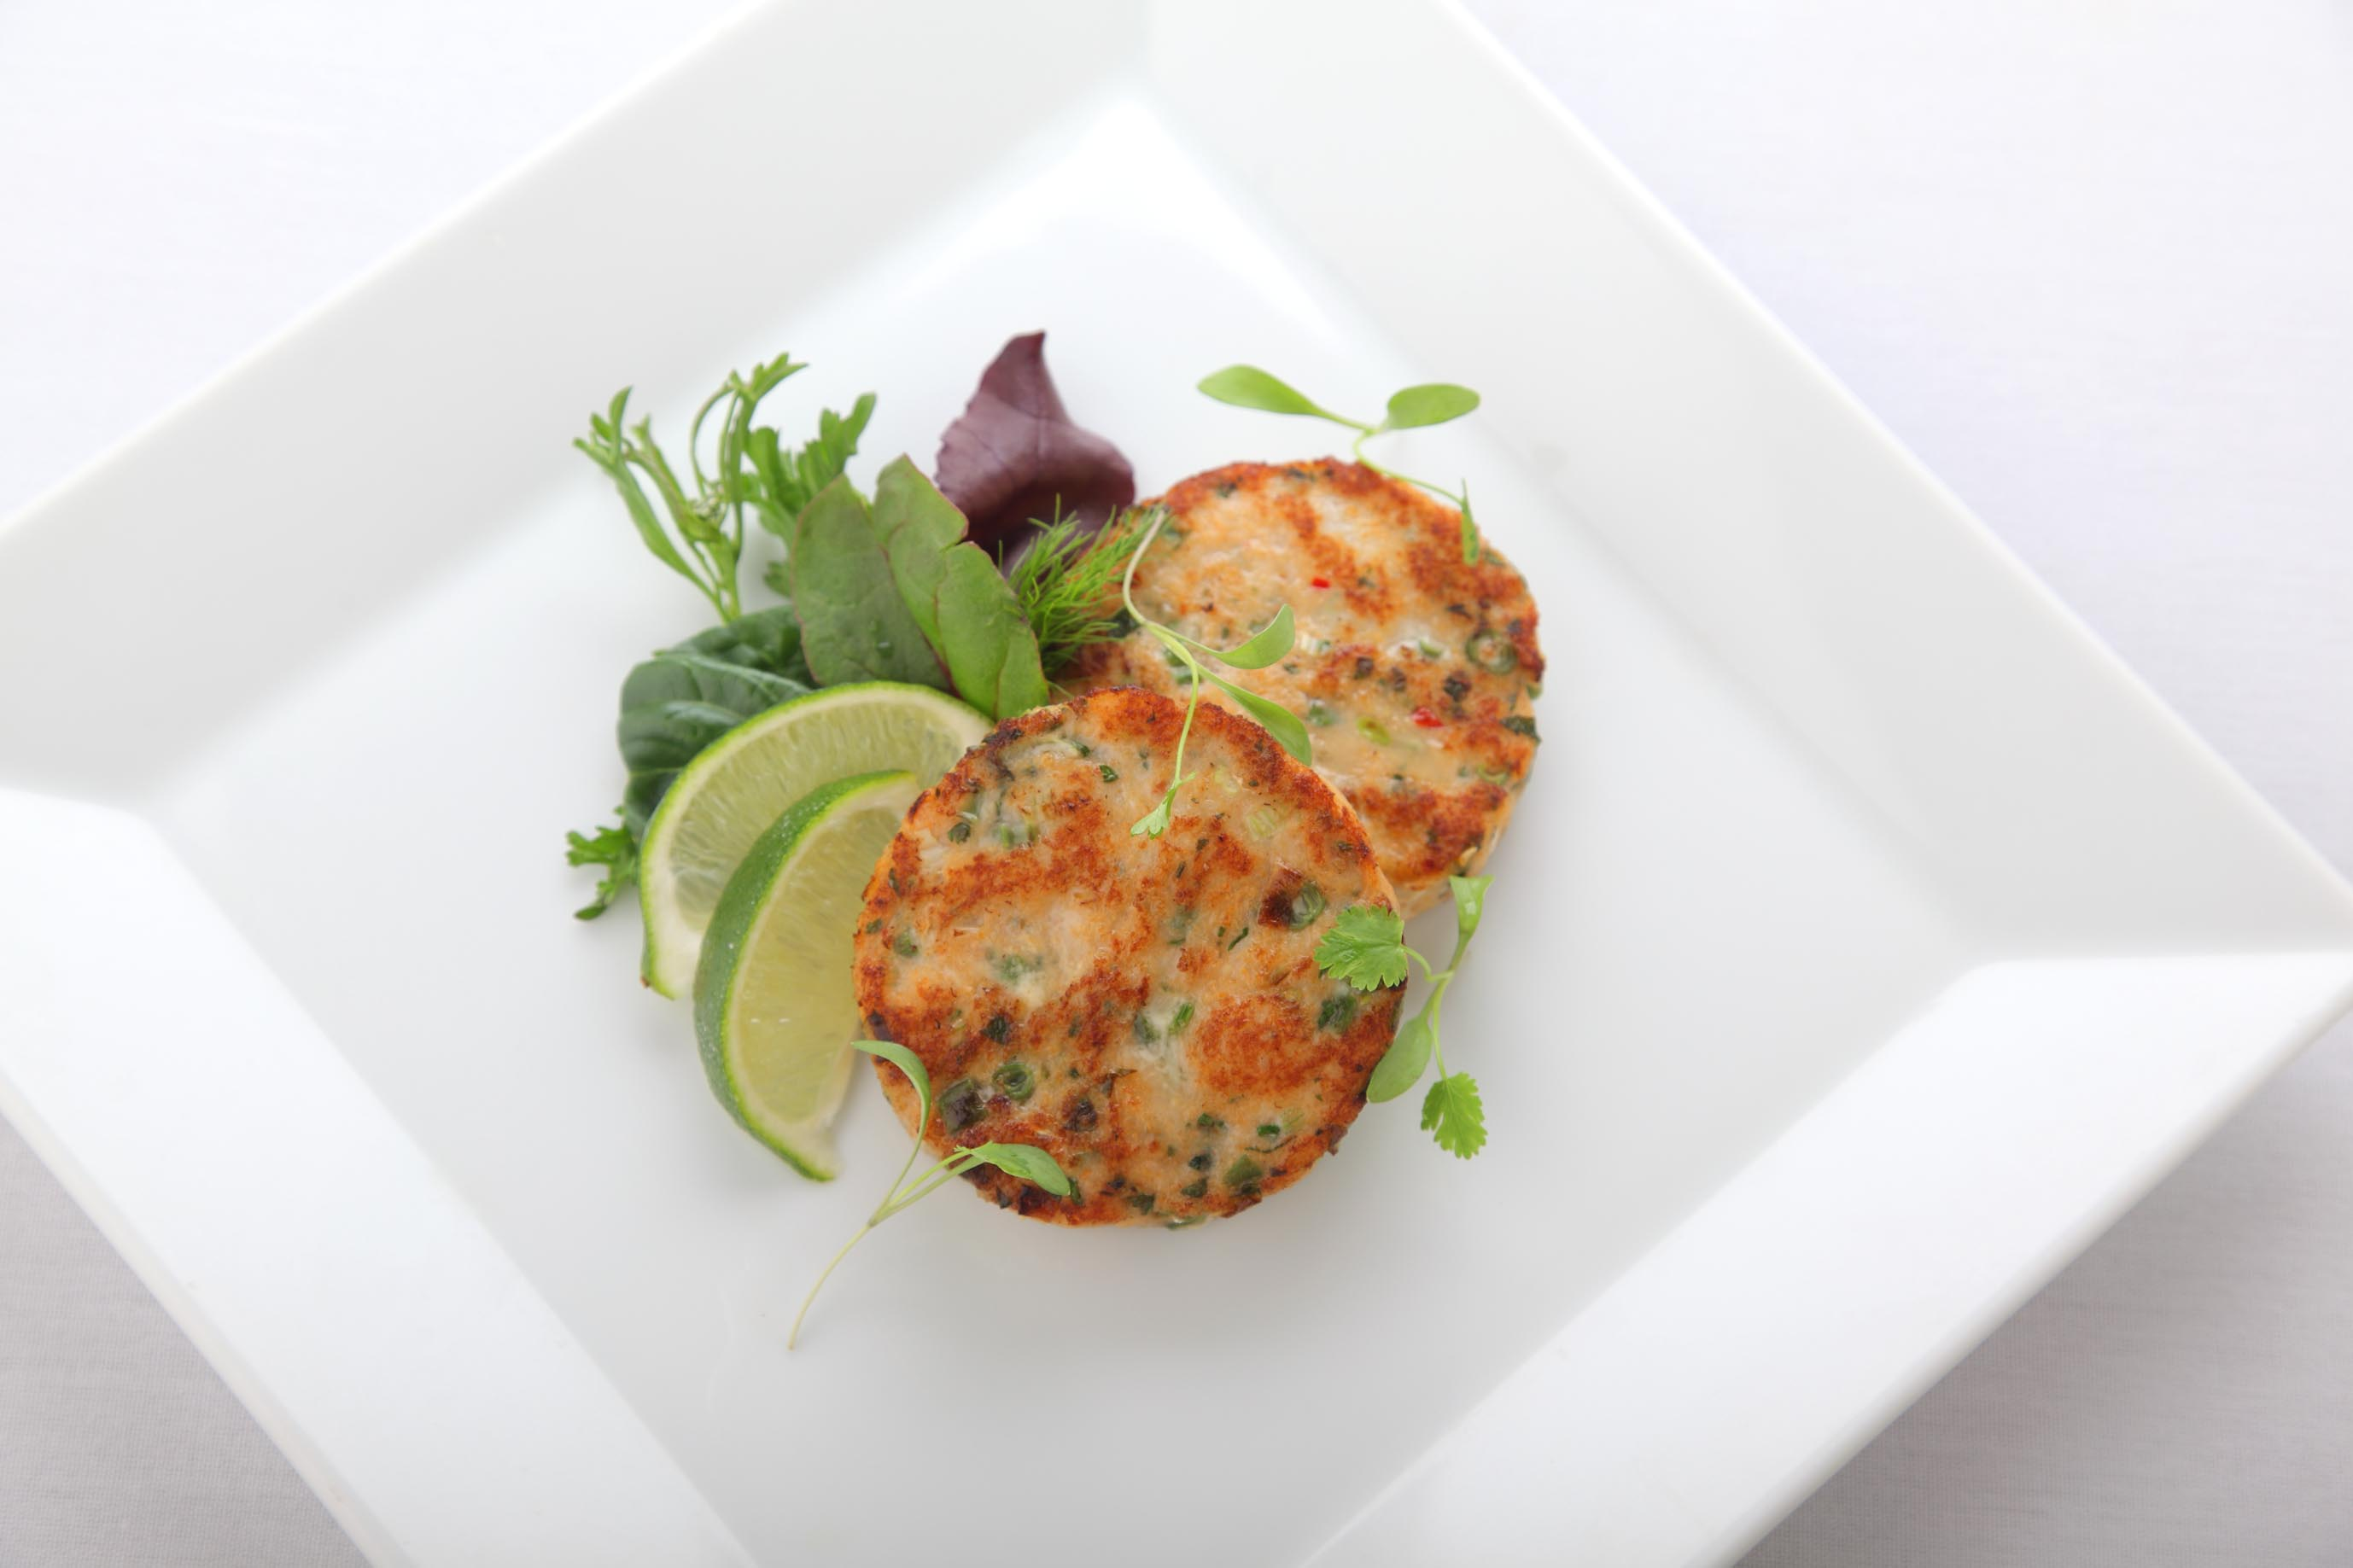 Fish Cakes Using Canned Tuna